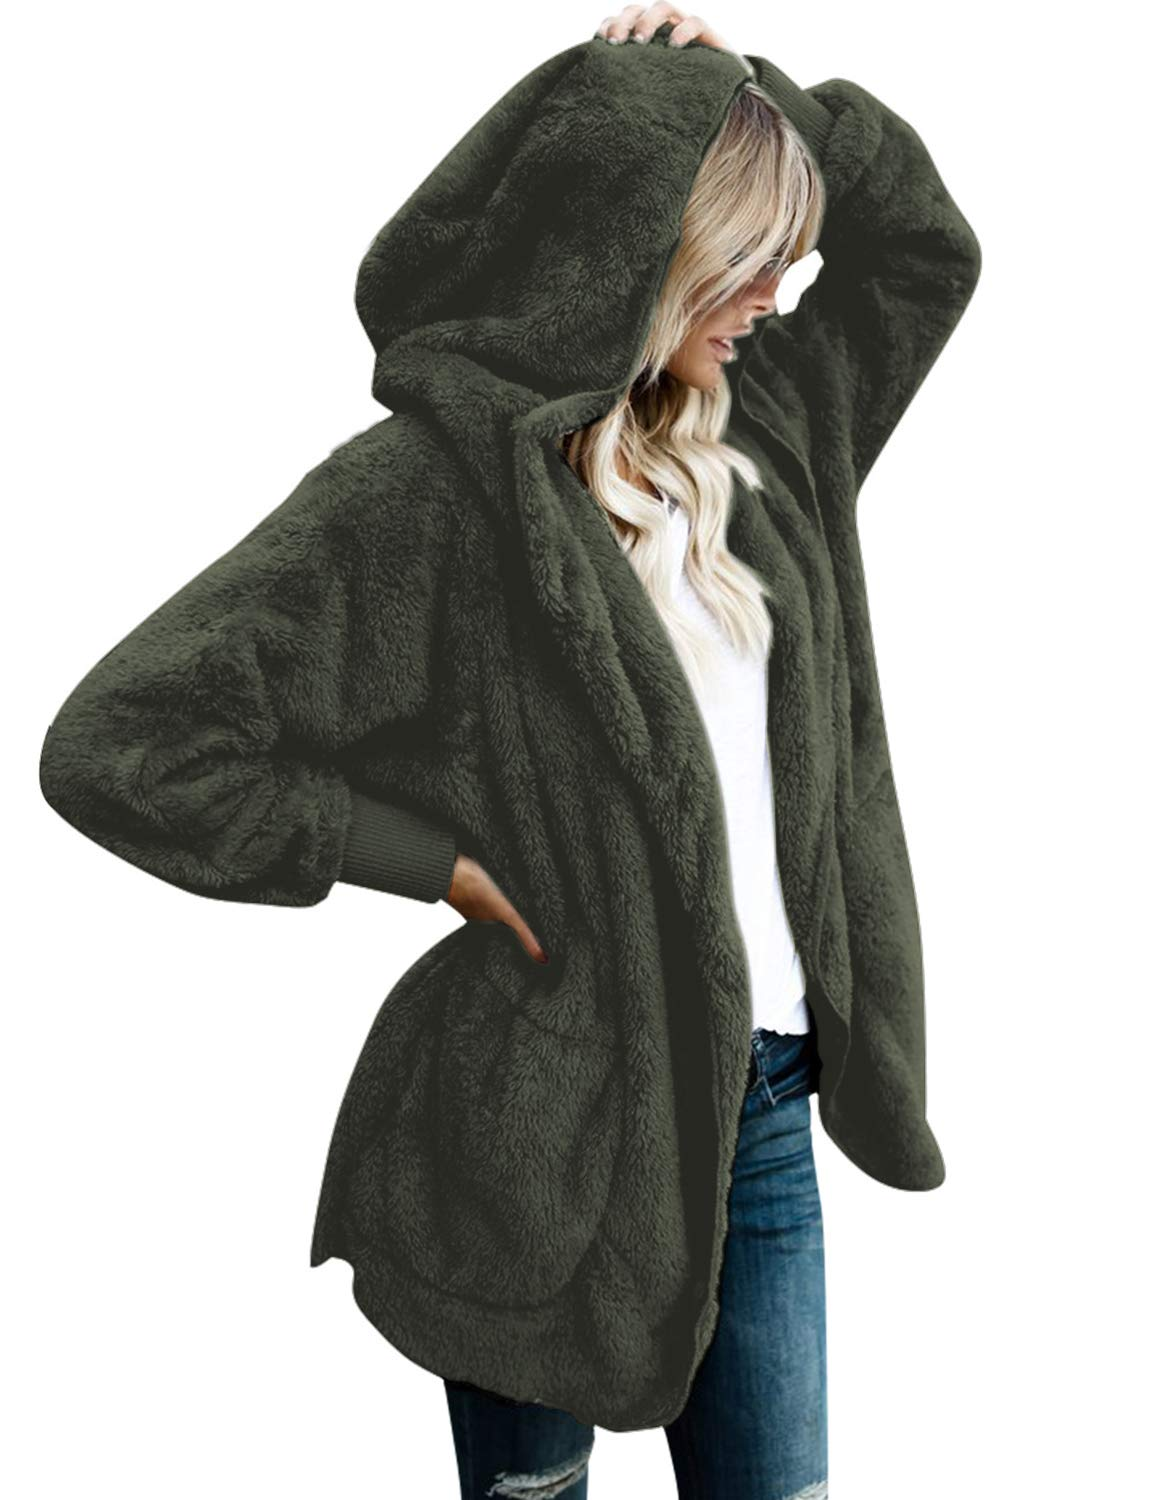 Lookbook Store Women's Oversized Open Front Hooded Draped Pockets Cardigan Coat LBS-TO-3187-N